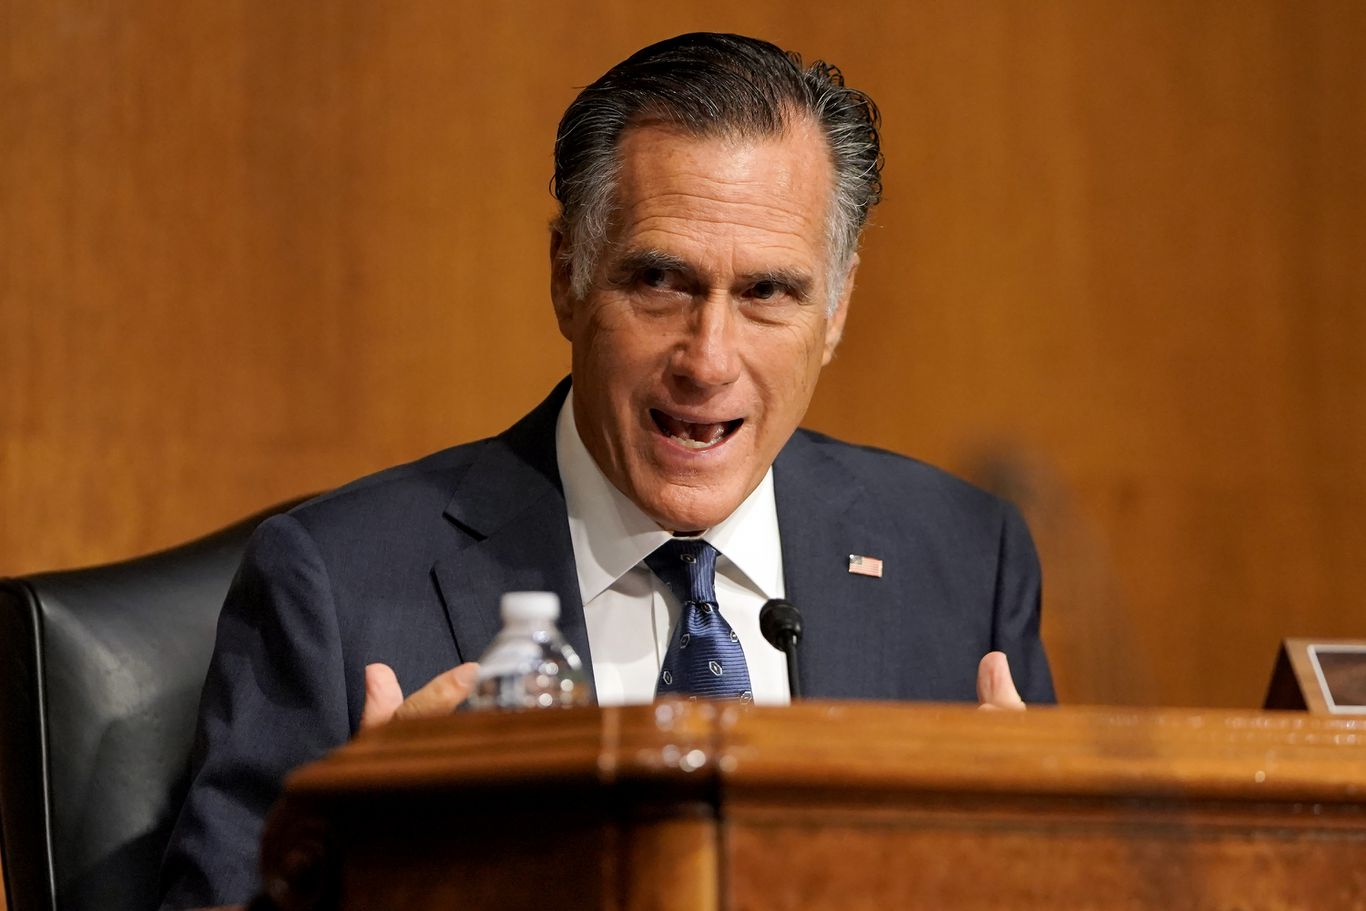 Mitt Romney says he'll support moving forward with Supreme Court pick thumbnail